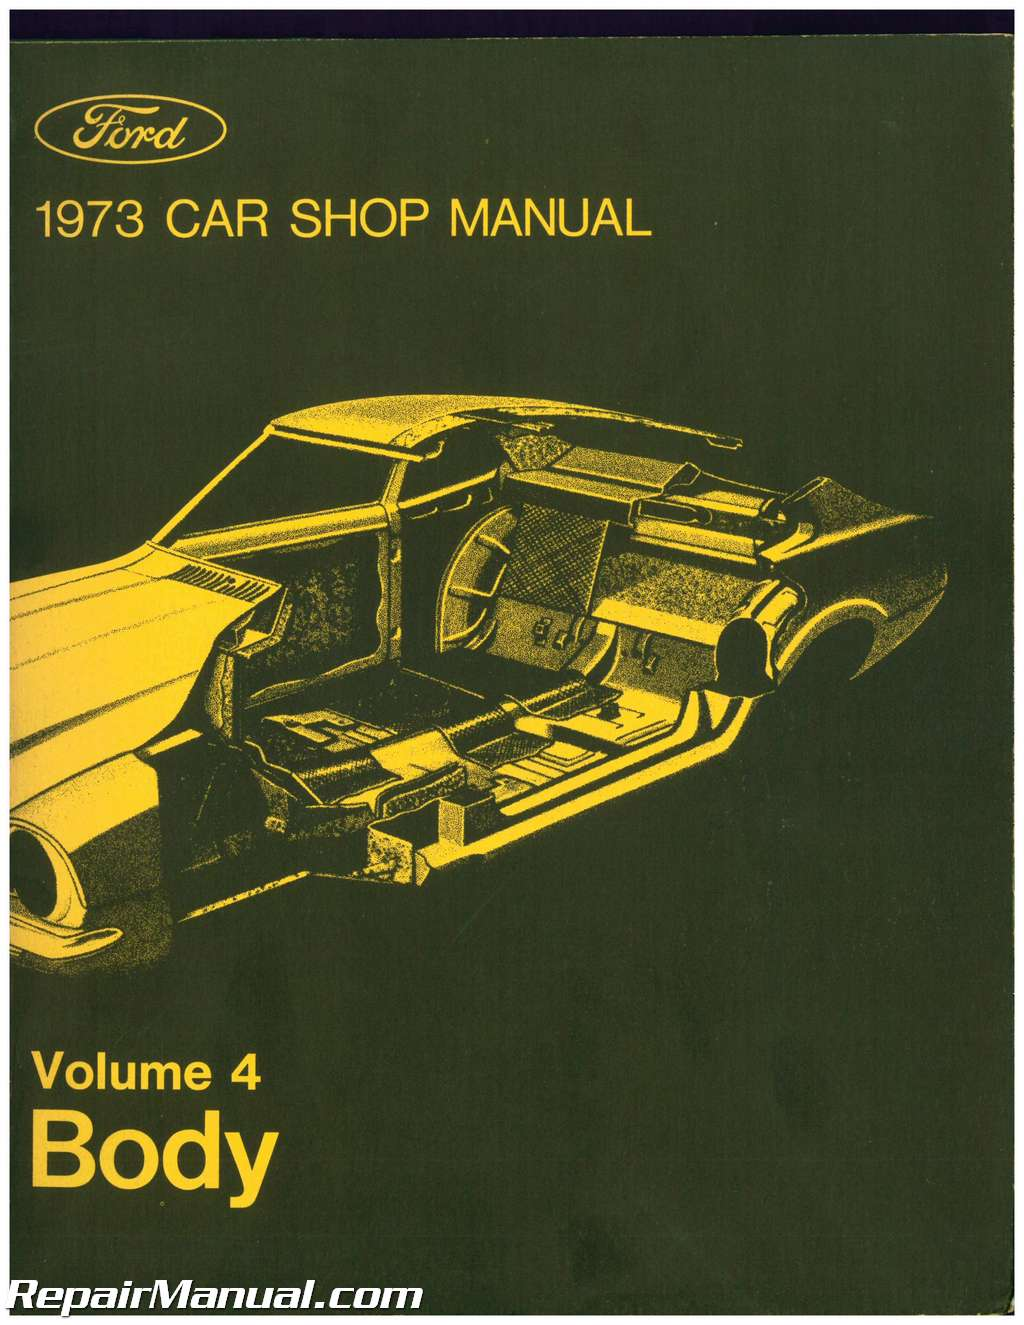 1973 ford truck shop manual volume 2